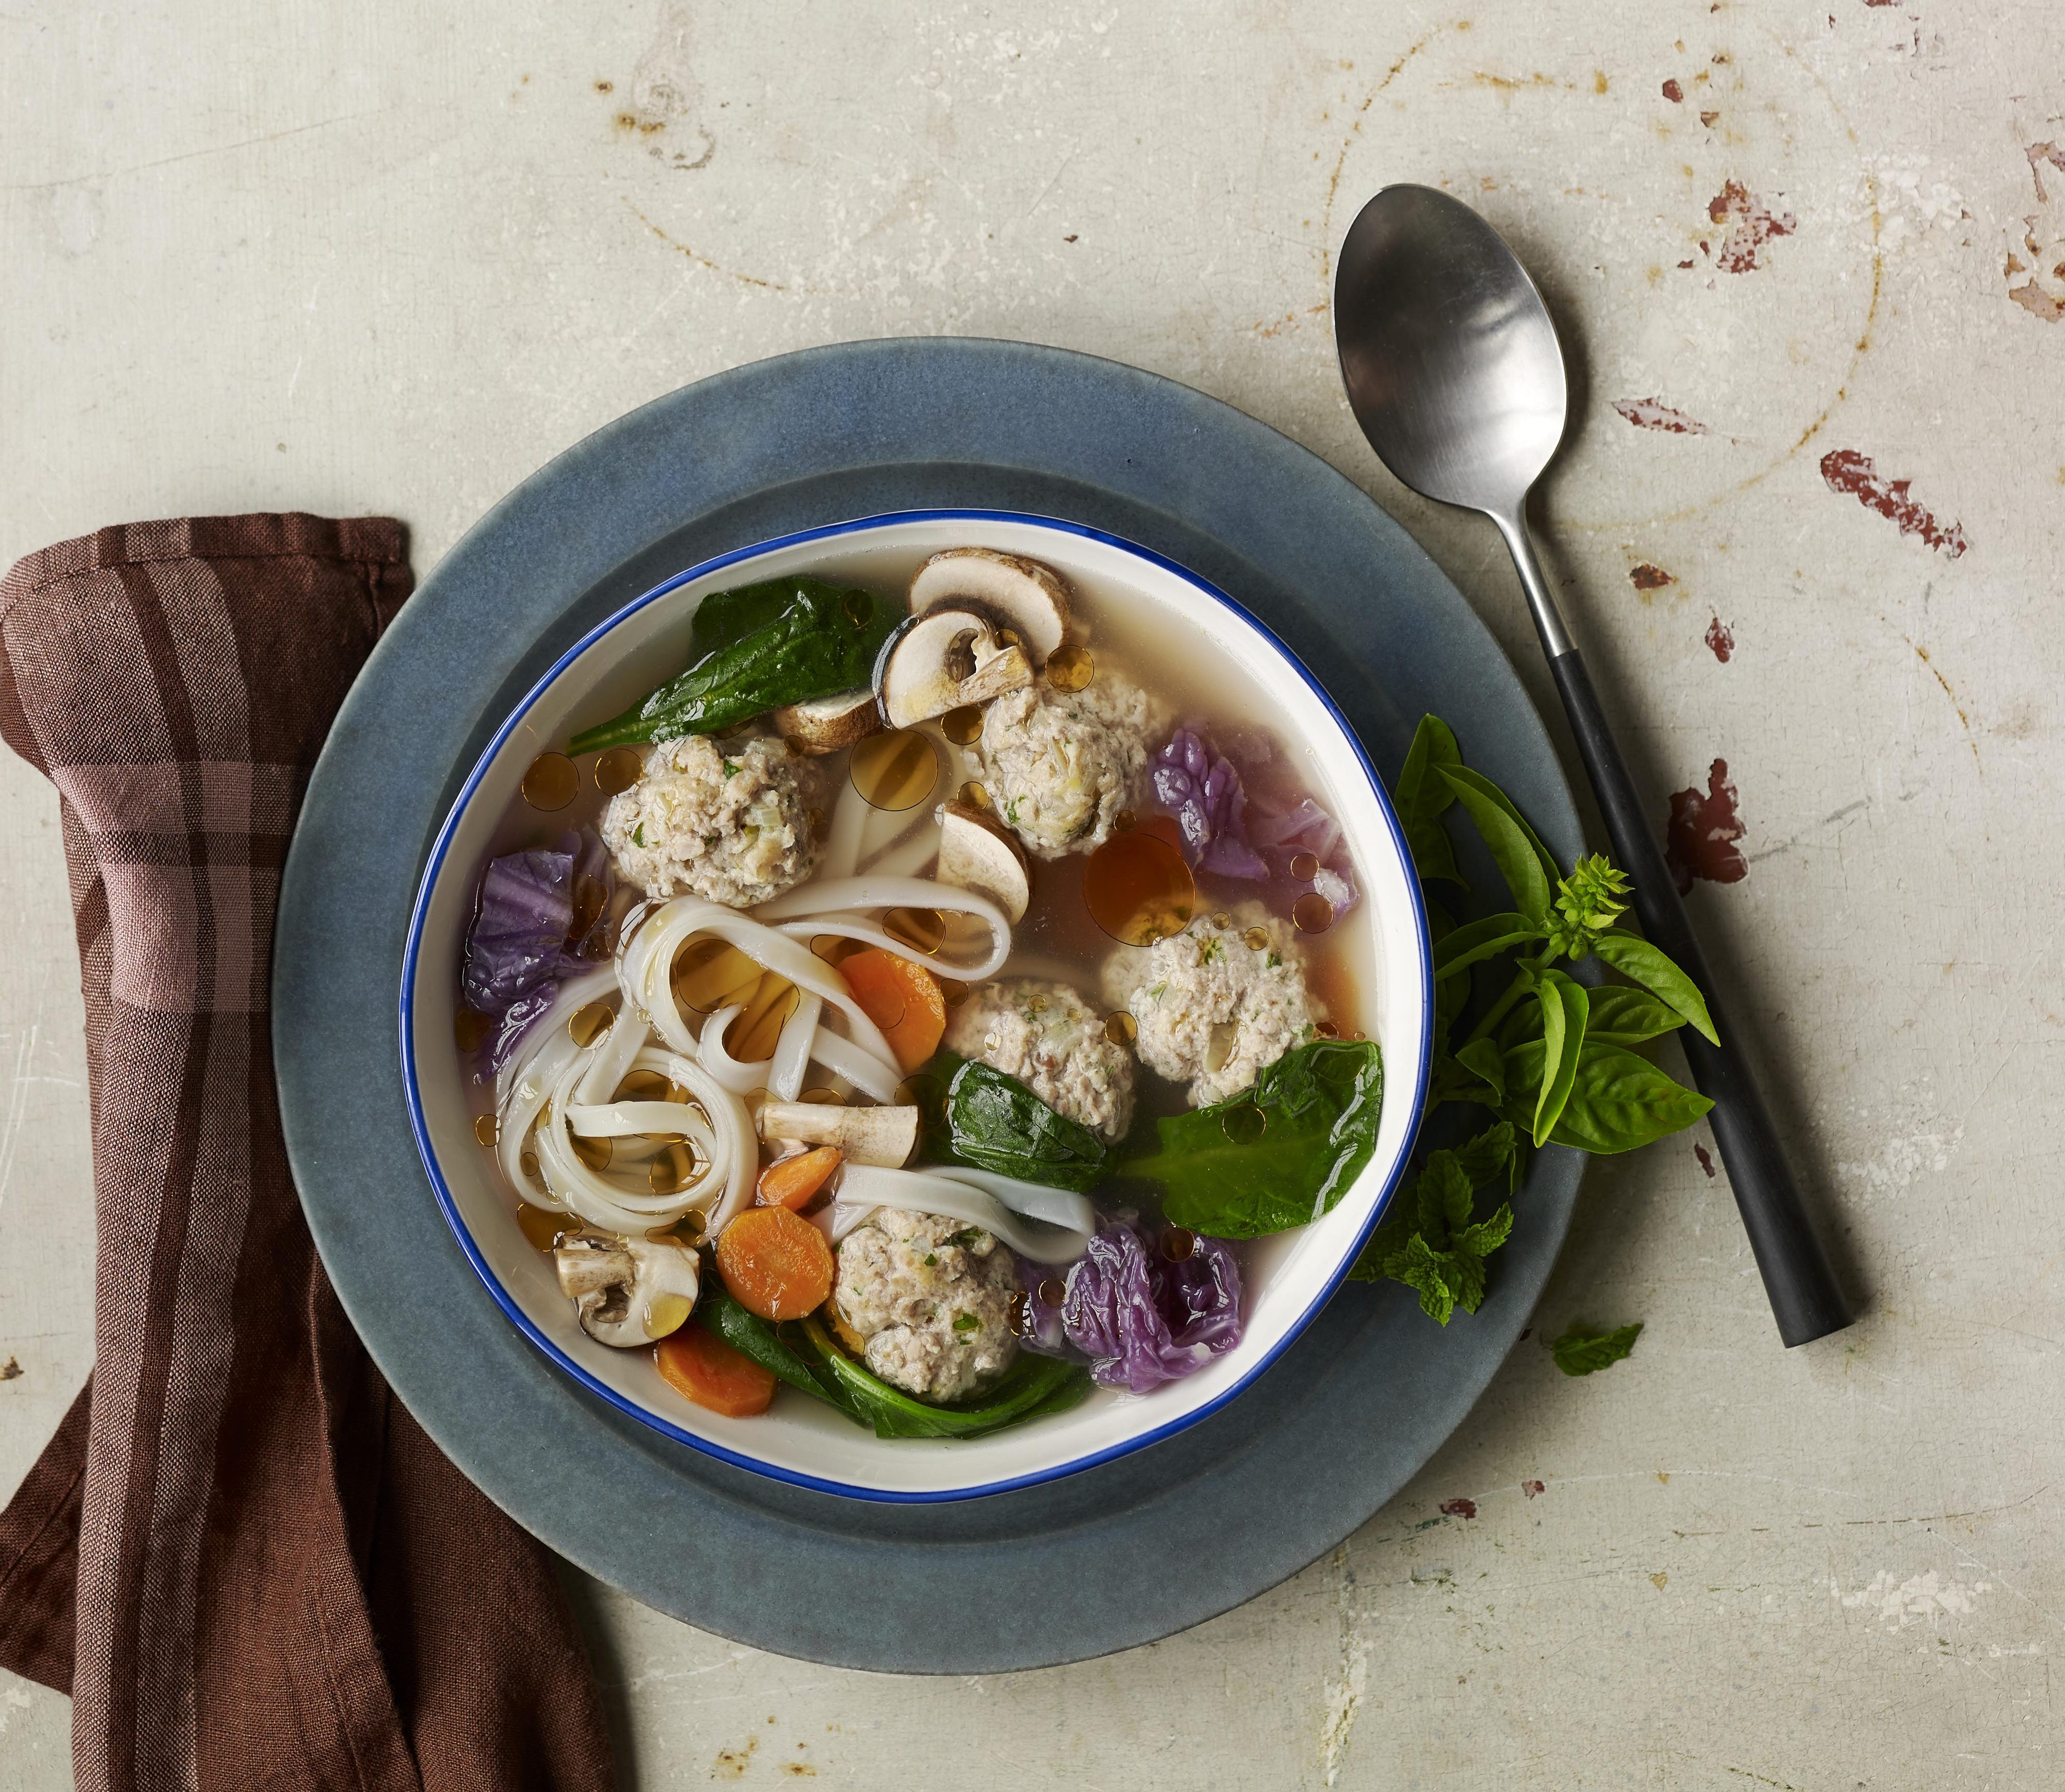 Gingered-Turkey Meatball Soup from Everyday Dorie